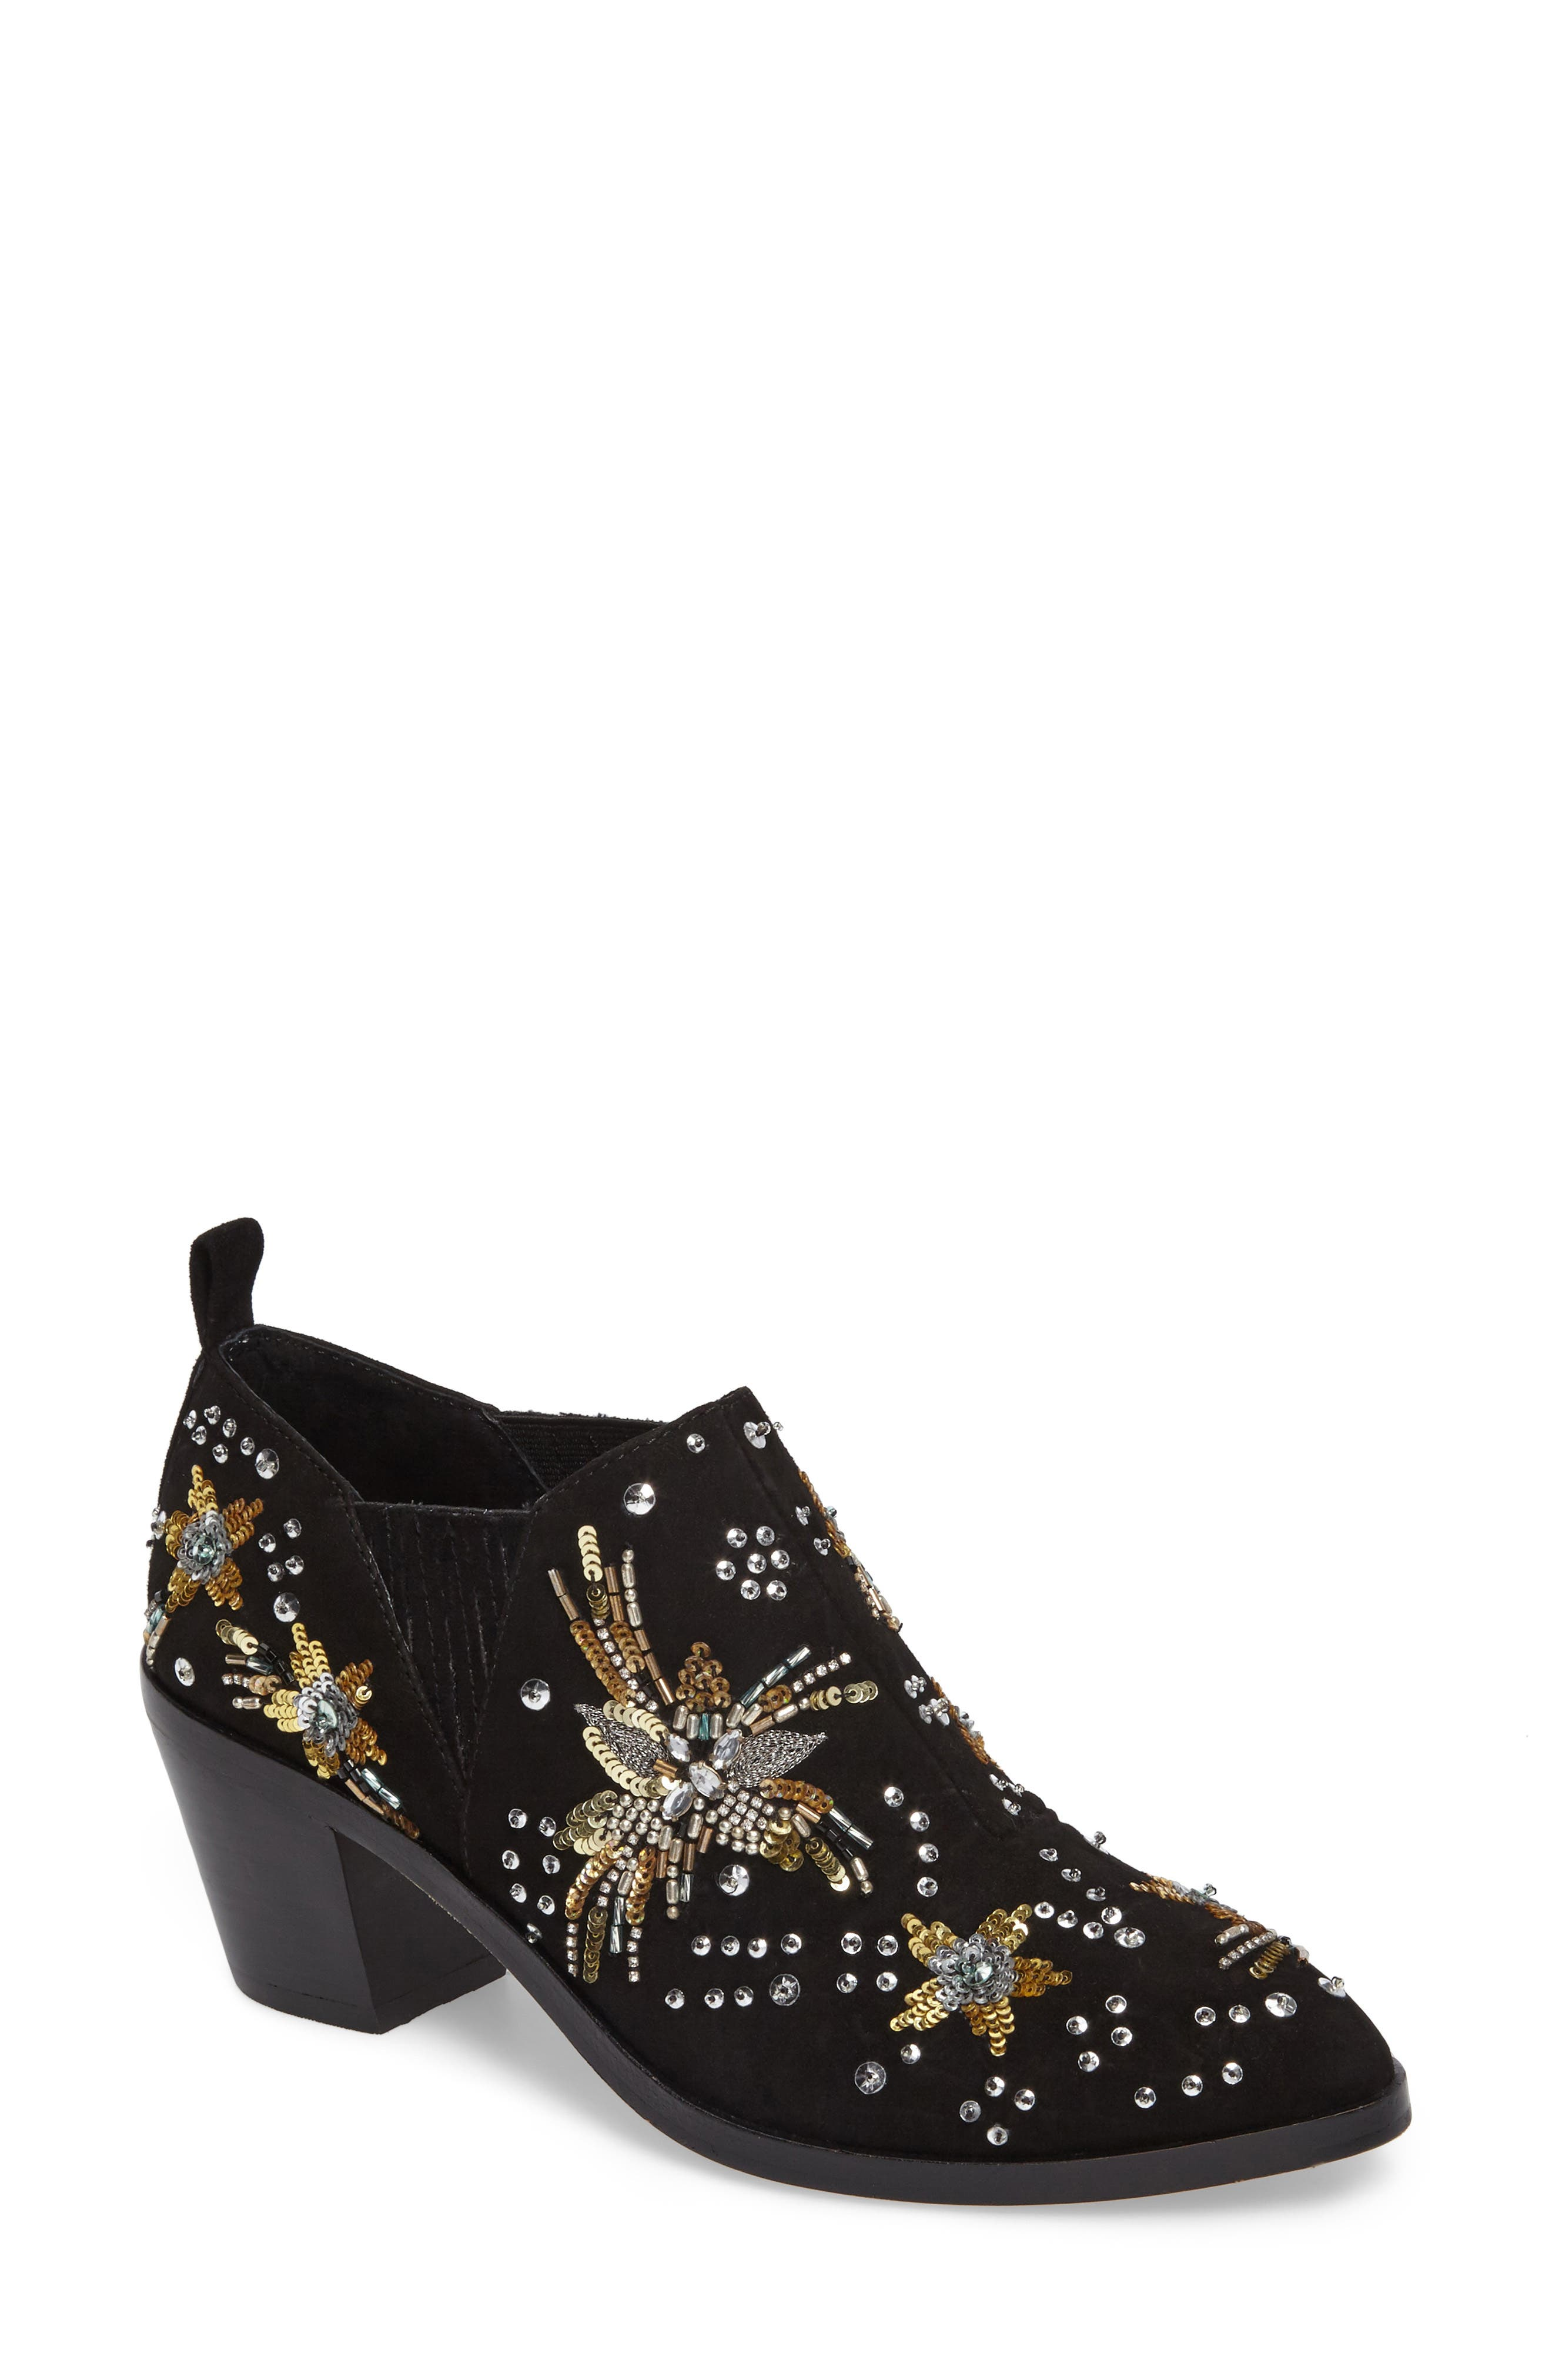 Lucy Embellished Bootie,                             Main thumbnail 1, color,                             001